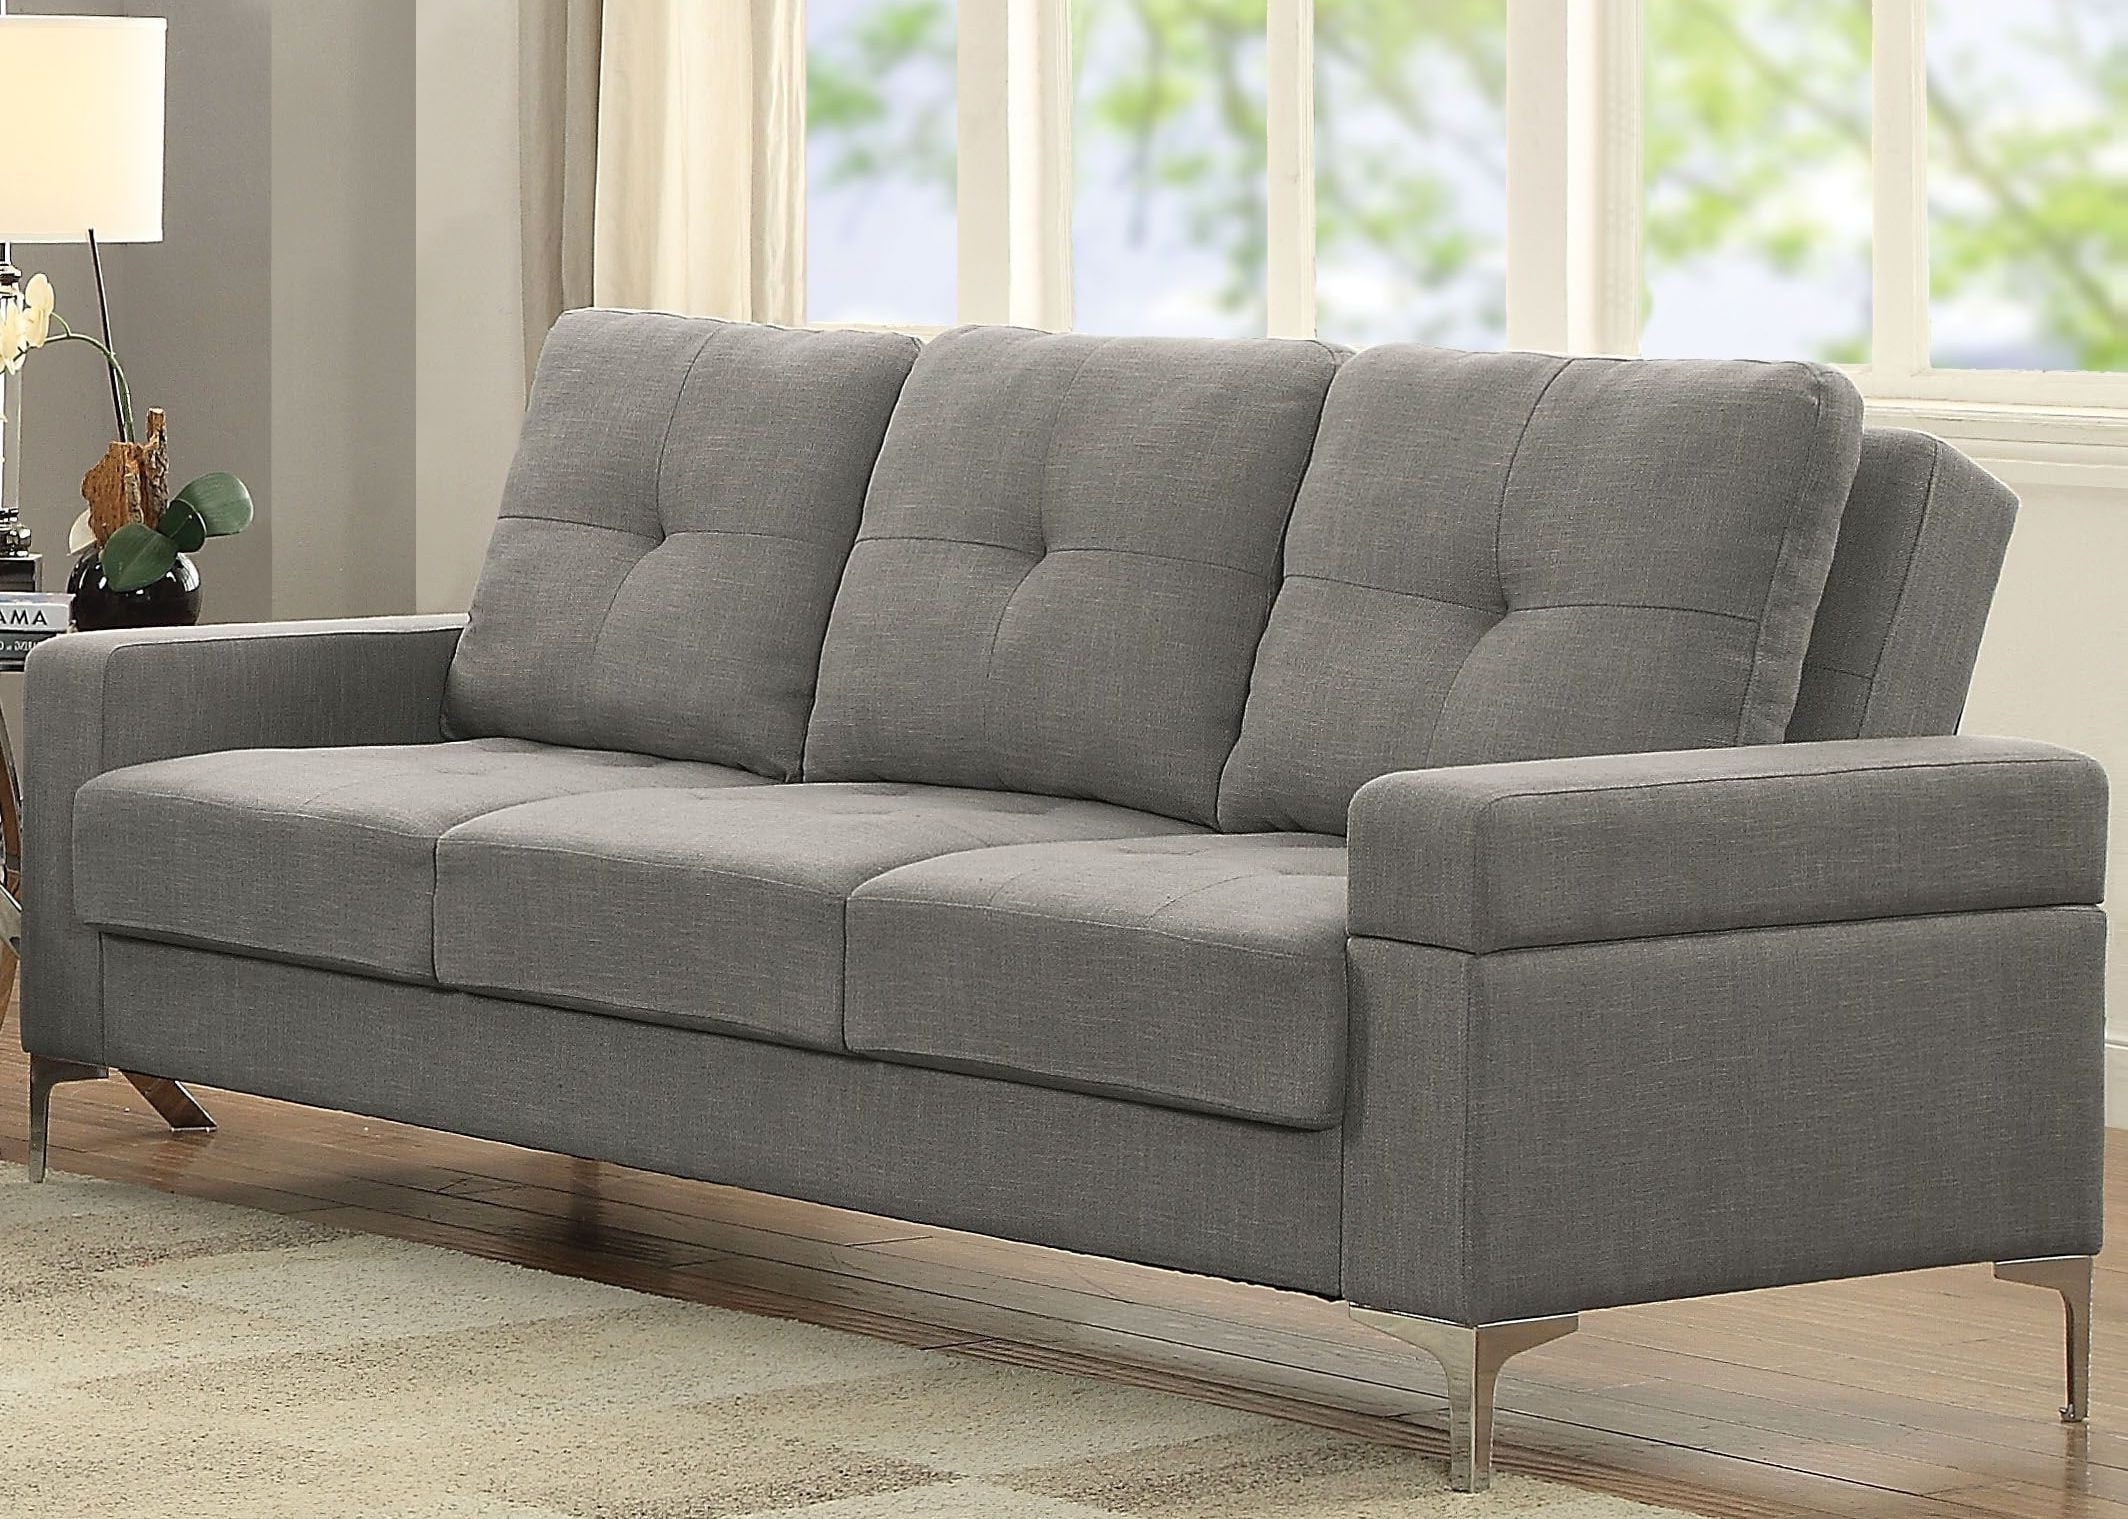 Sectional Sofas At Barrie Regarding 2019 Dorian Gray Linen Adjustable Sofa From Acme (View 14 of 20)